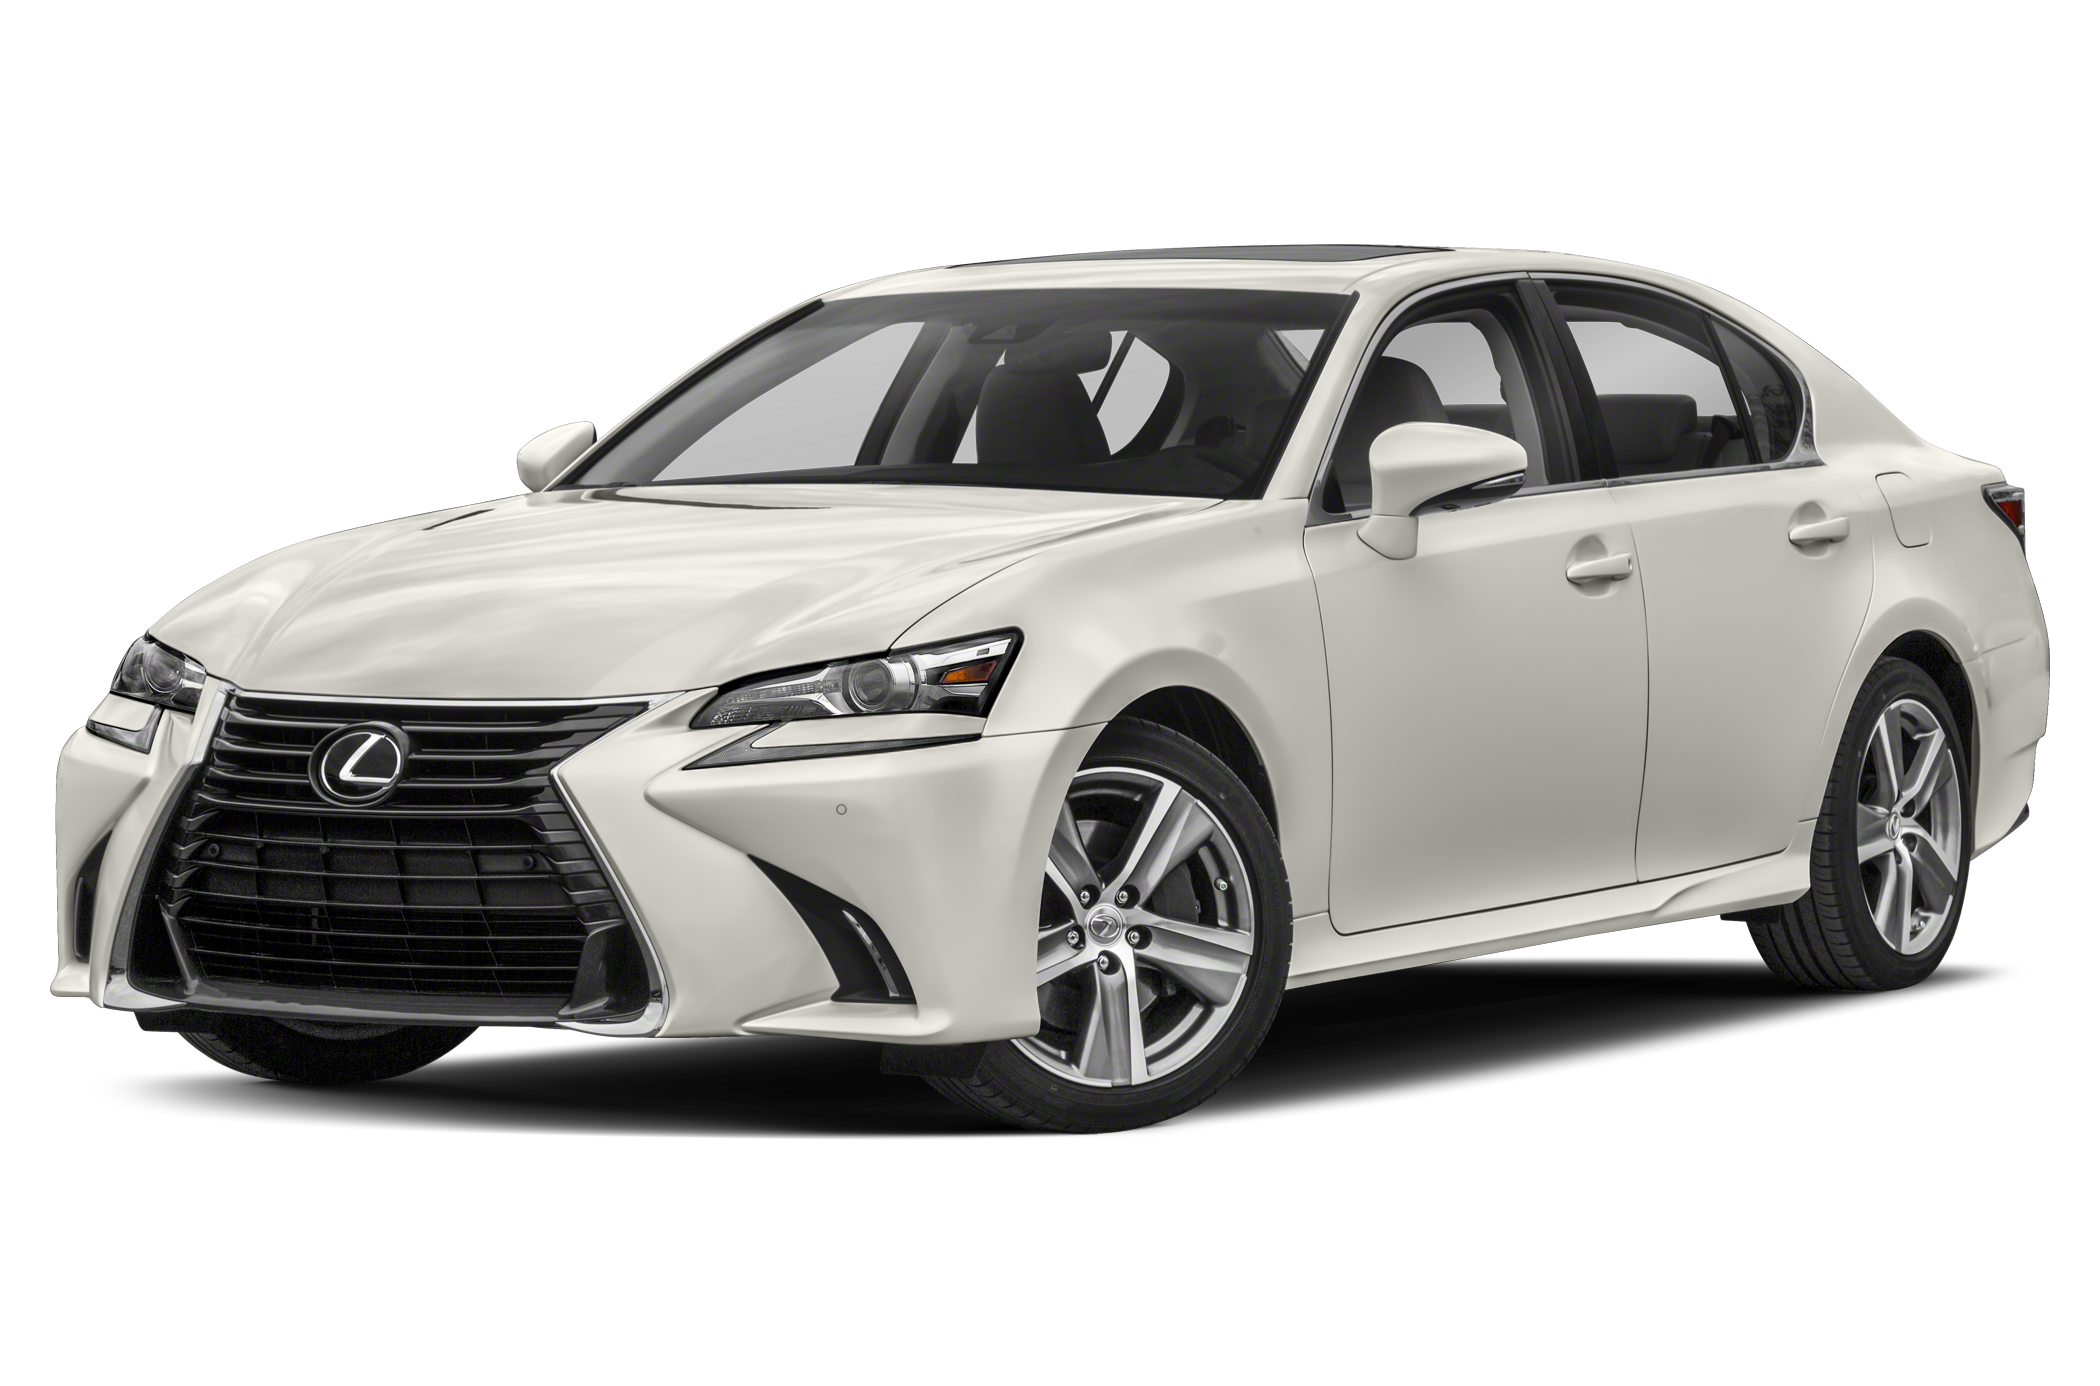 resized lexus deals singapore motorshow and show special offers price promotions list more is motor